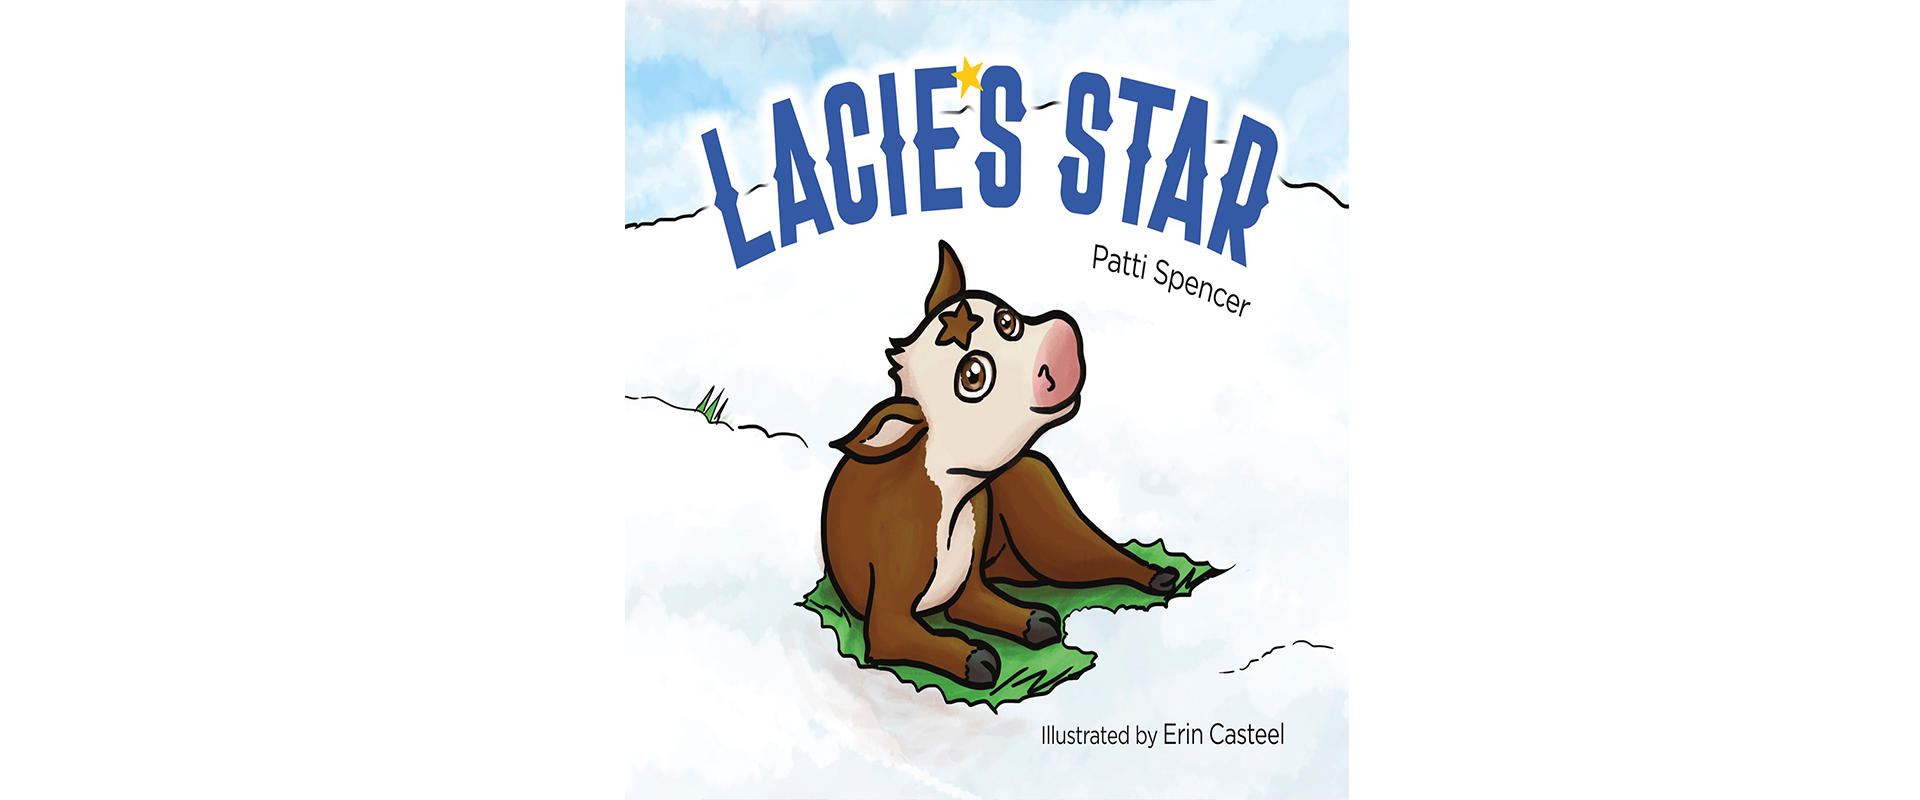 The cover of Lacie's Star by Patti Spencer